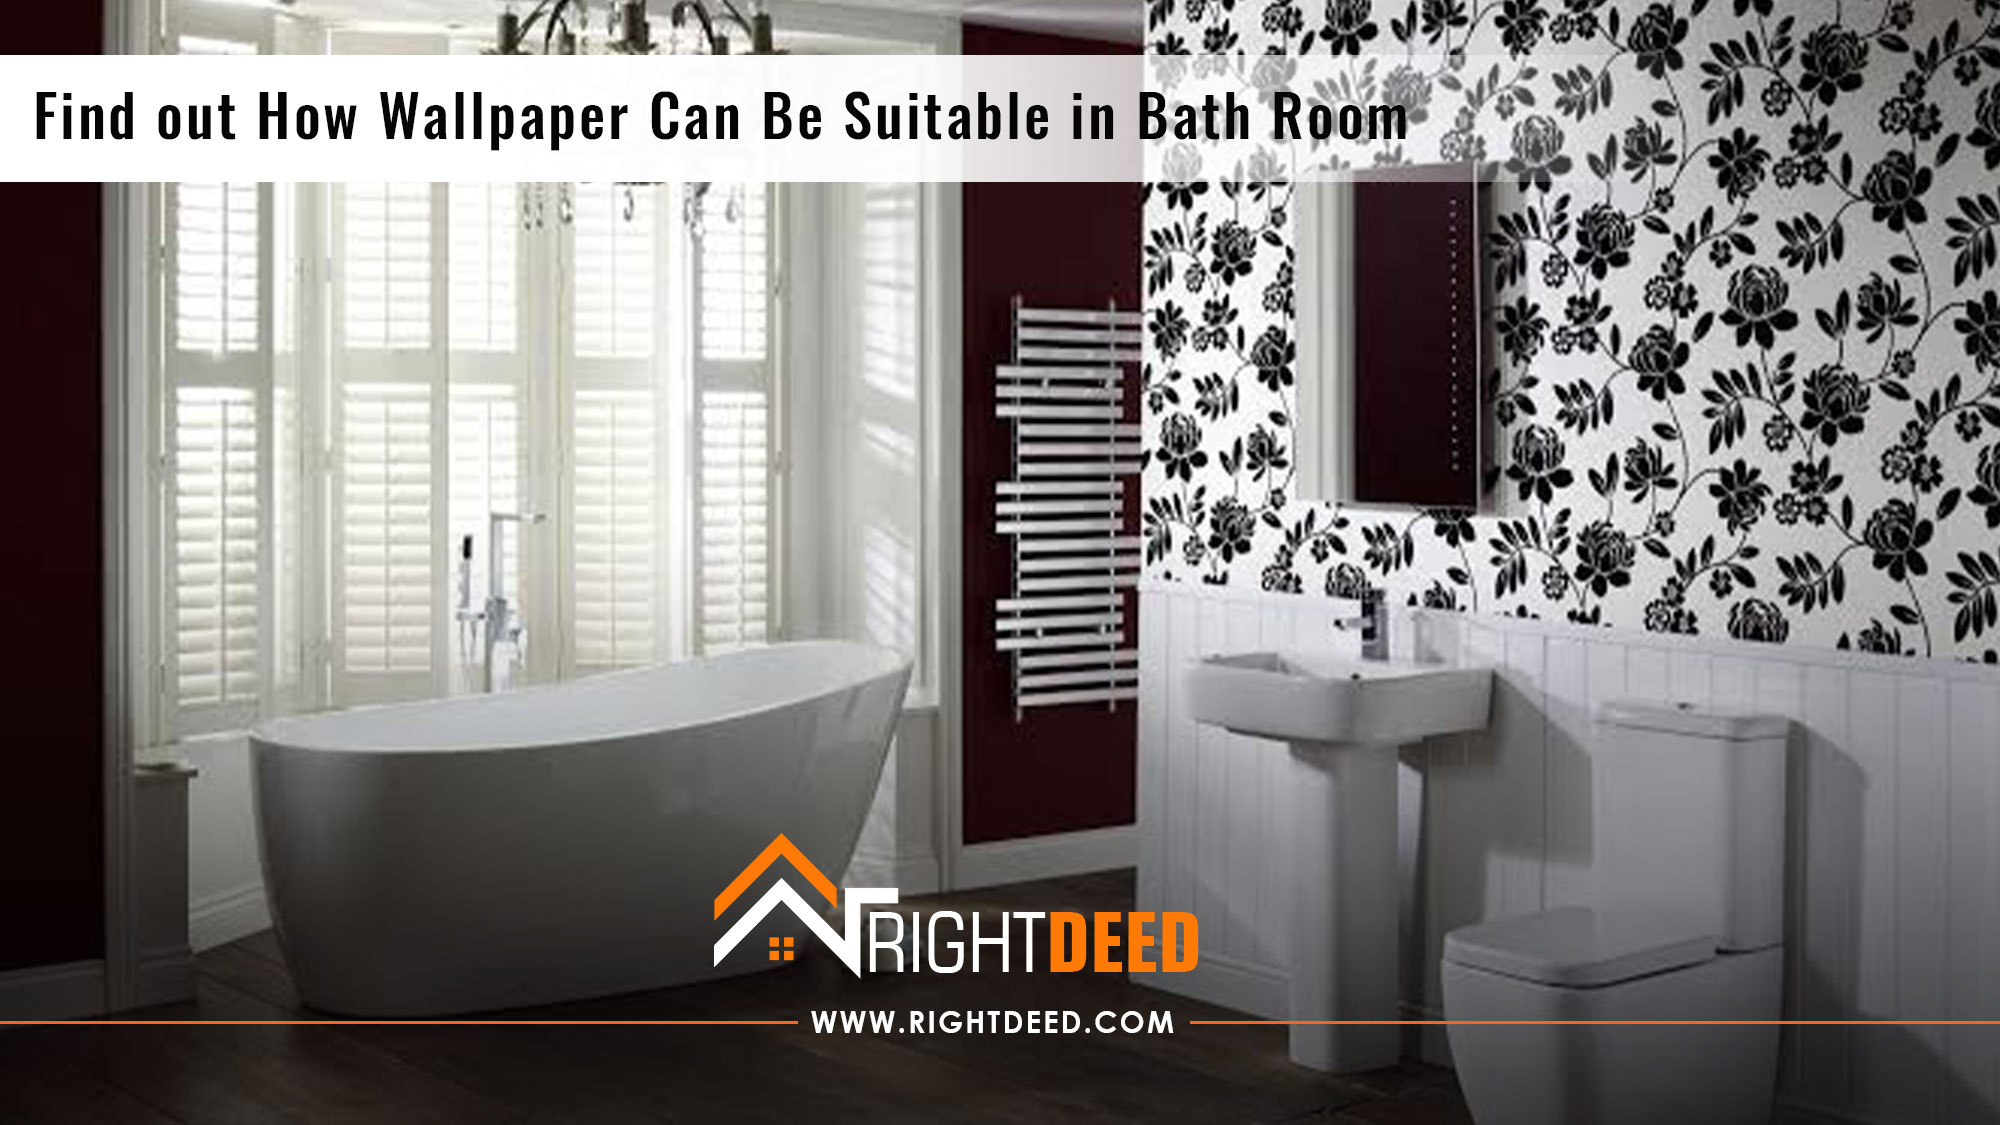 Find Out How Wallpaper Can Be Suitable In Bath Room